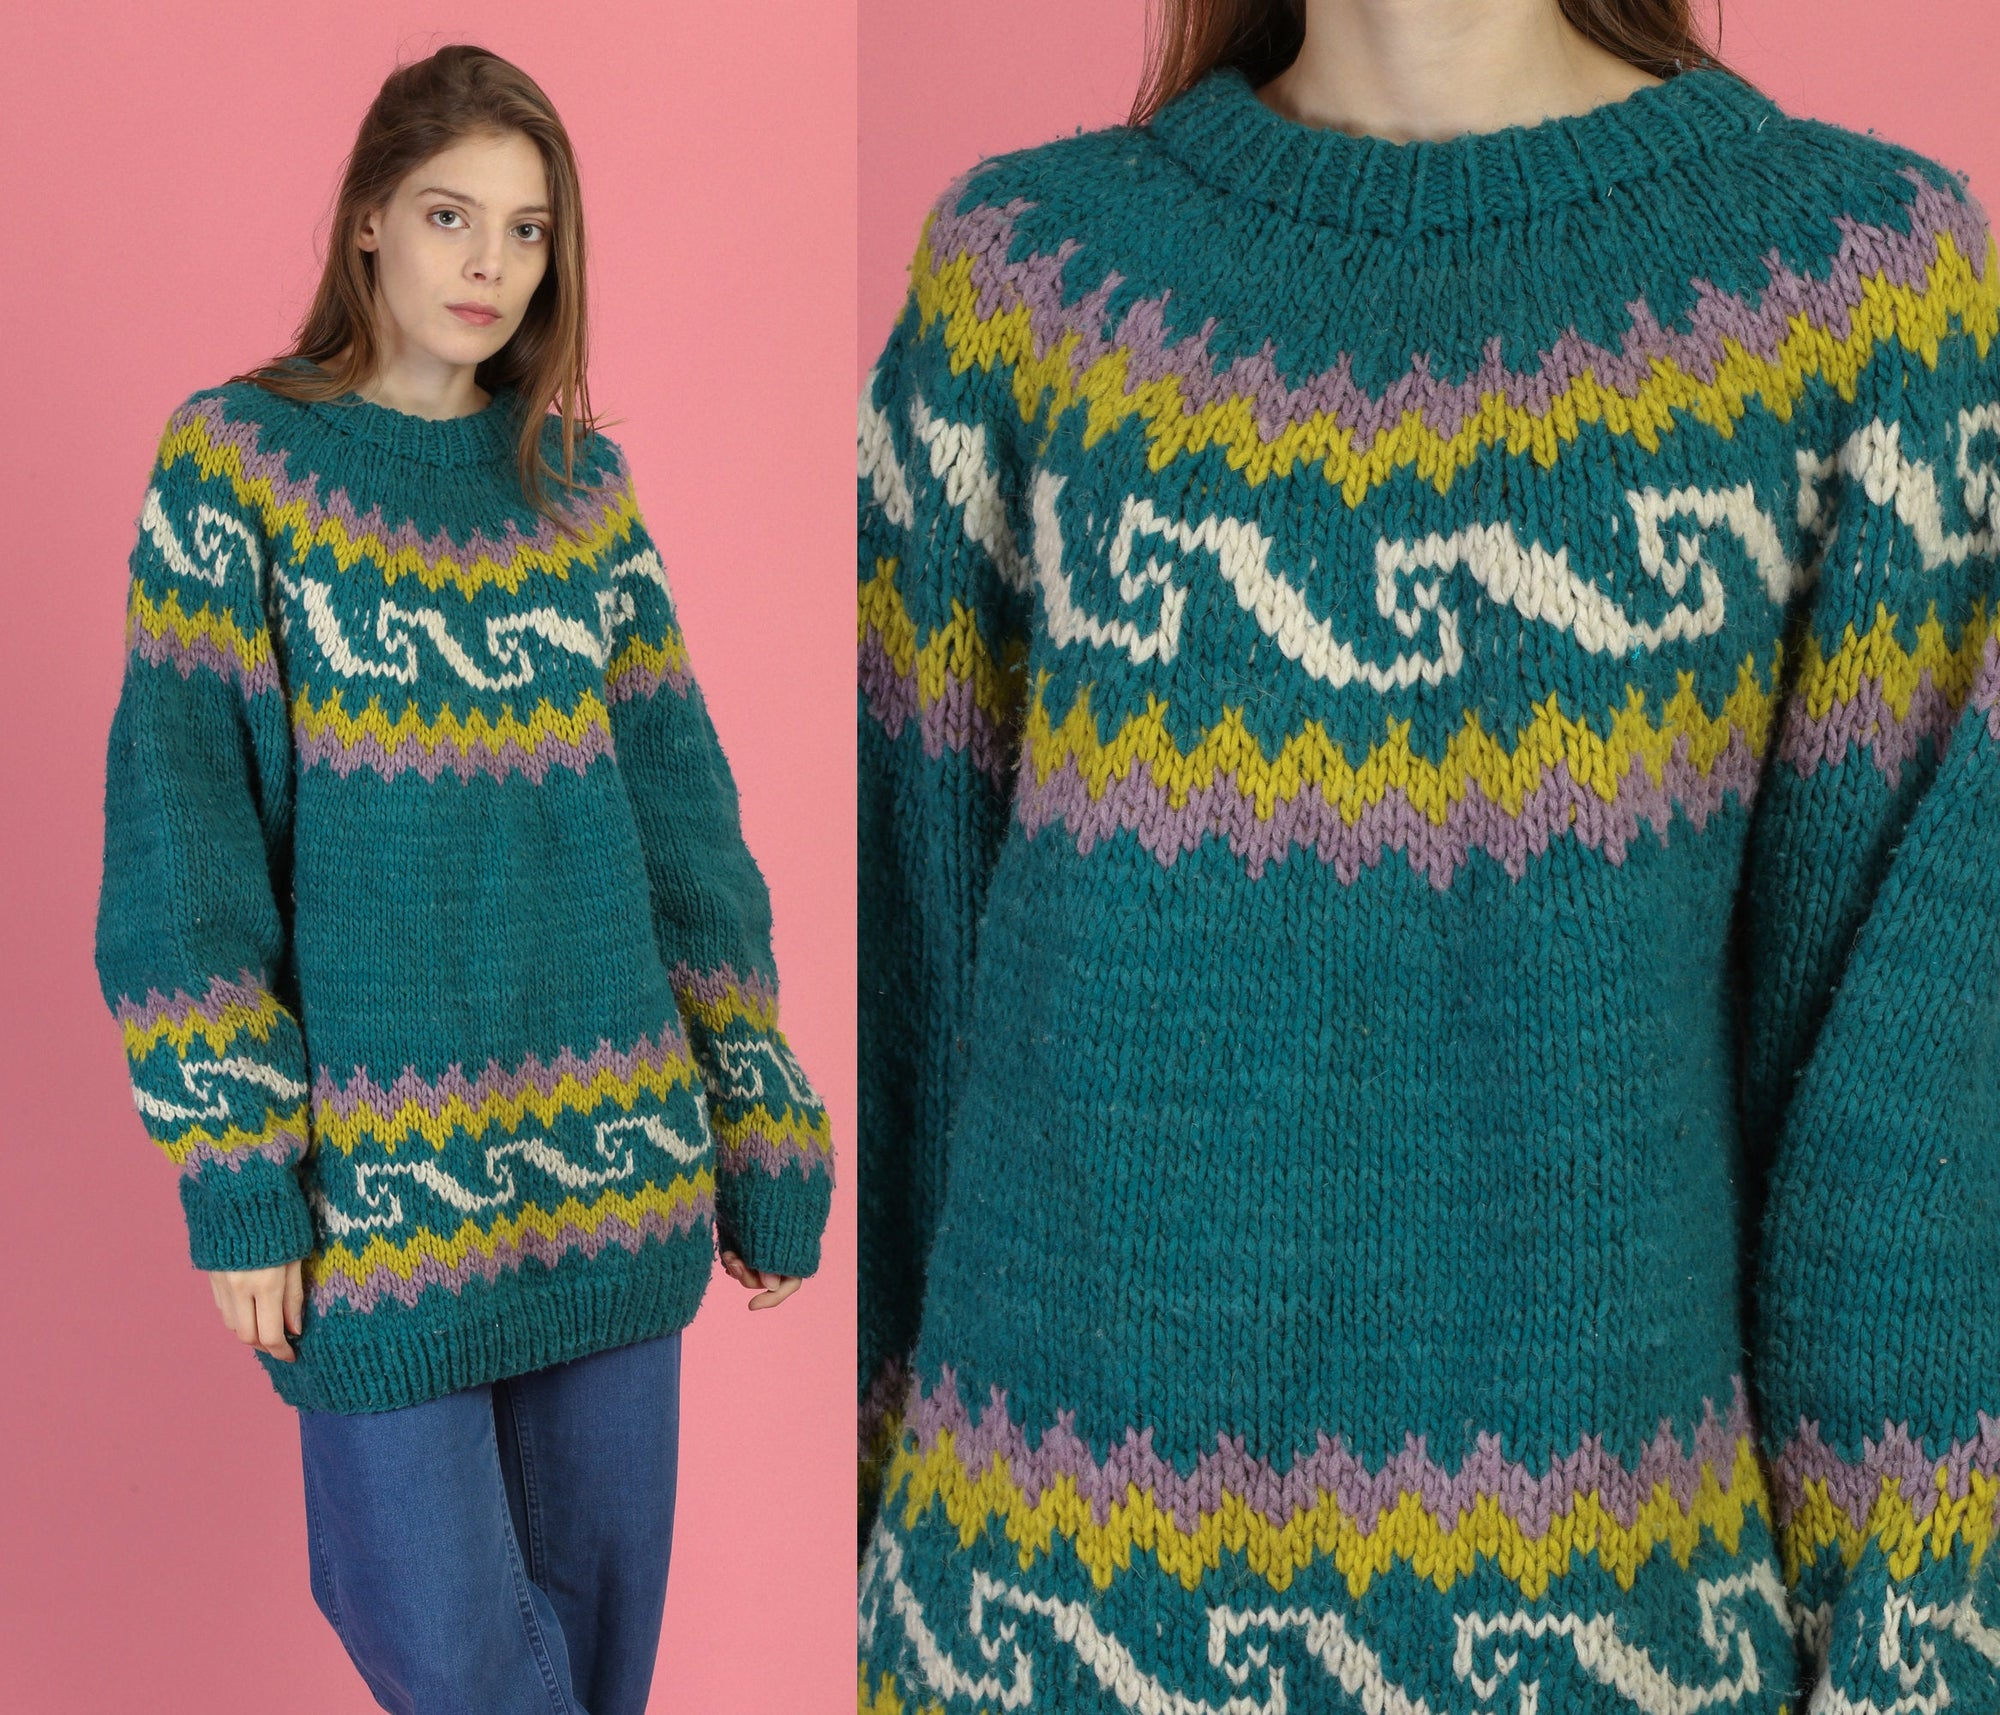 70s Oversize Ecuadorian Knit Sweater - Large